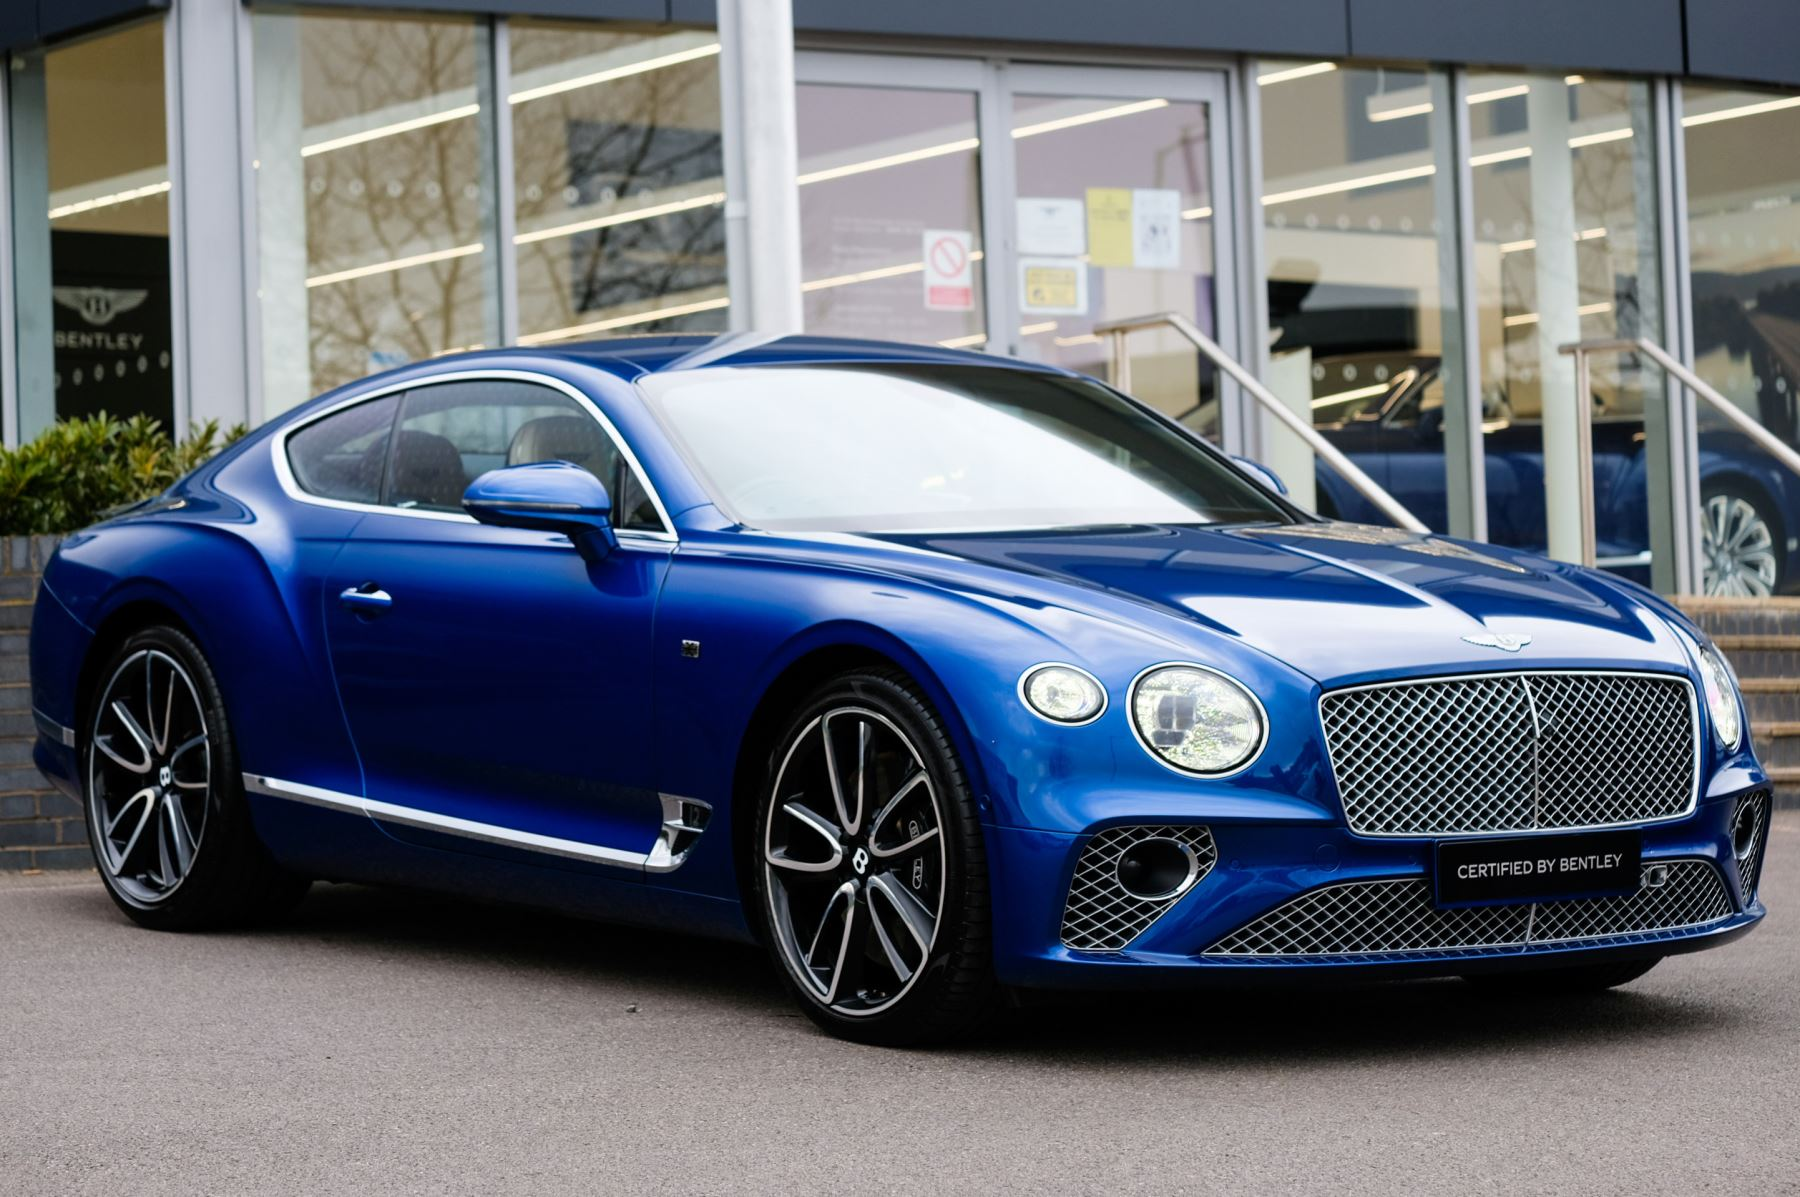 Bentley Continental GT 6.0 W12 - First Edition and Mulliner Specification Automatic 2 door Coupe (2018)